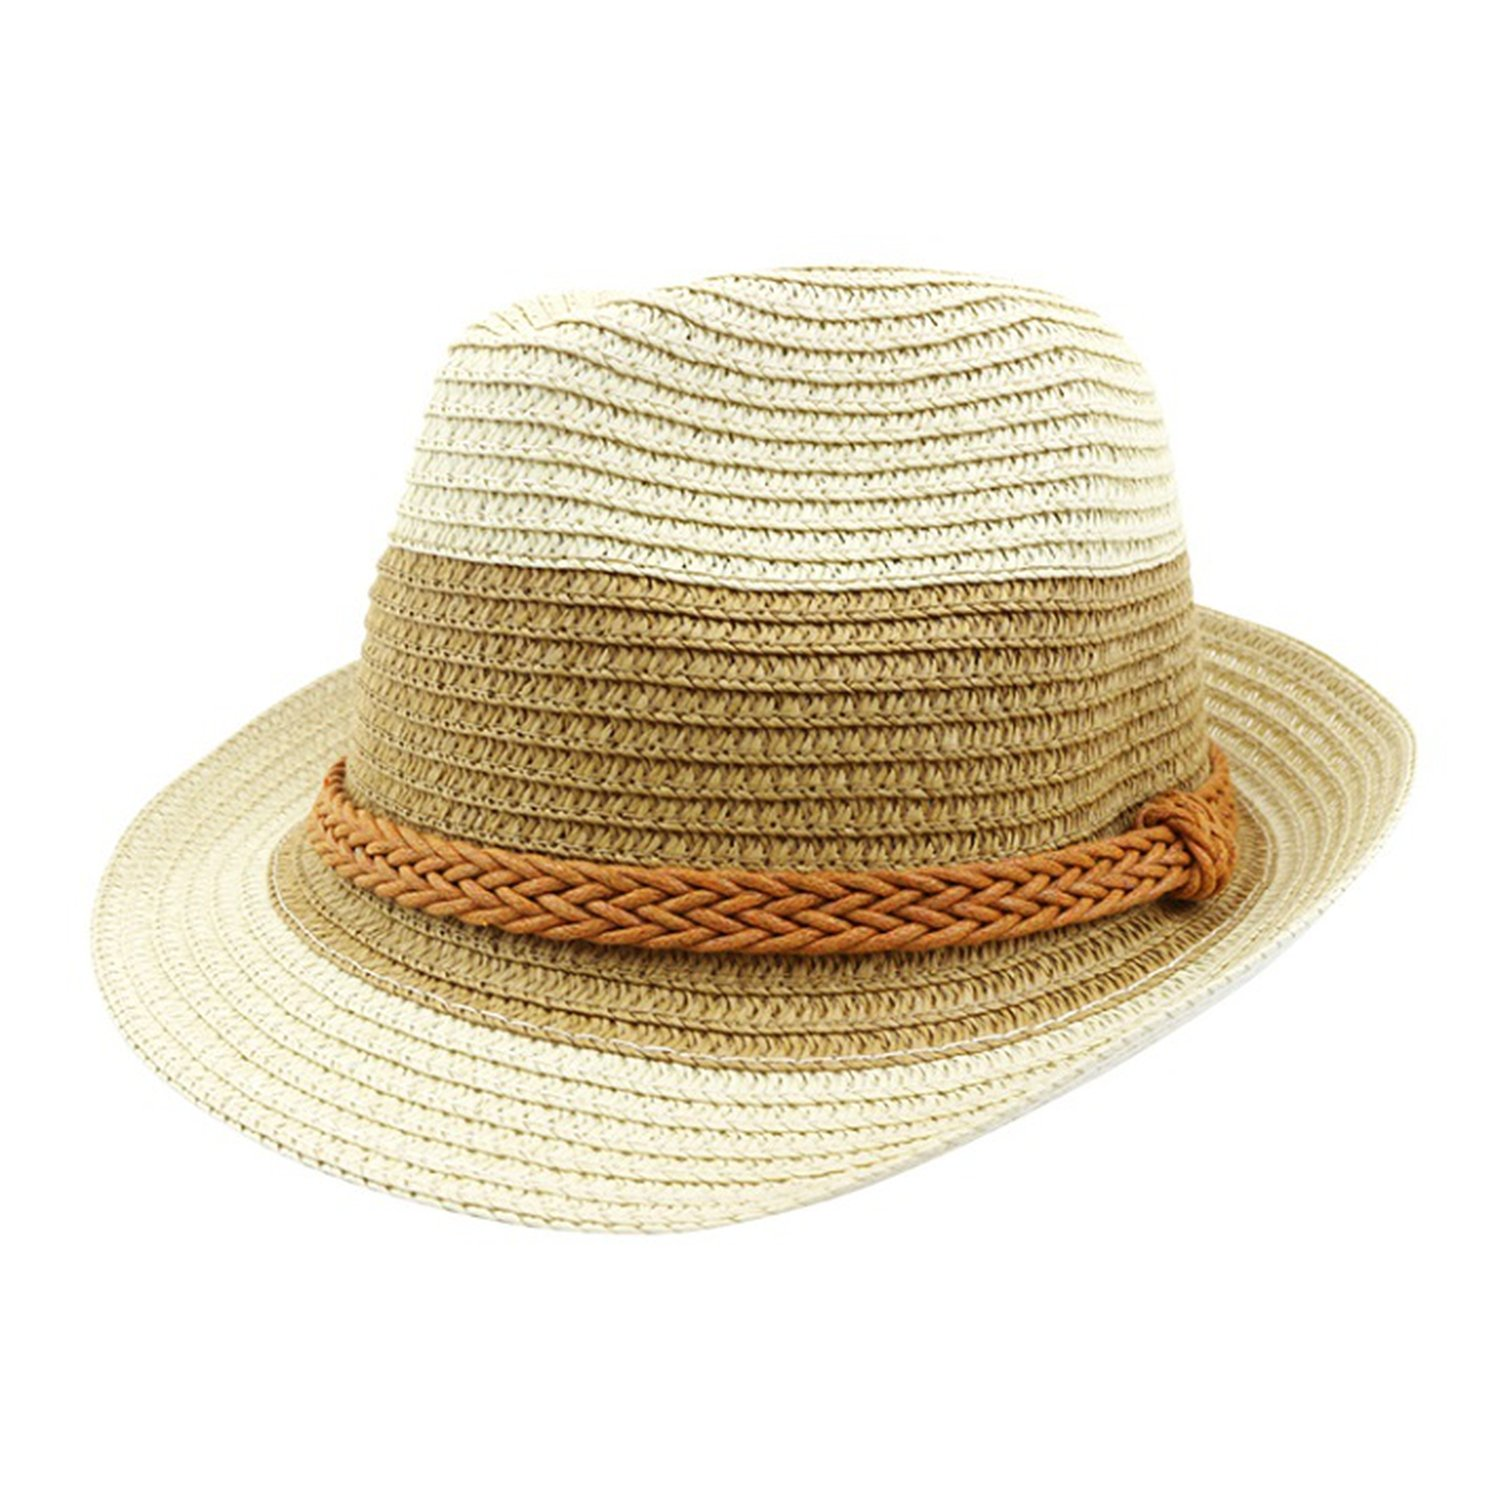 96d195e5c13 Hufong Women s Straw Hat Encryption Sun Hats Double Color Panama Summer at  Amazon Women s Clothing store